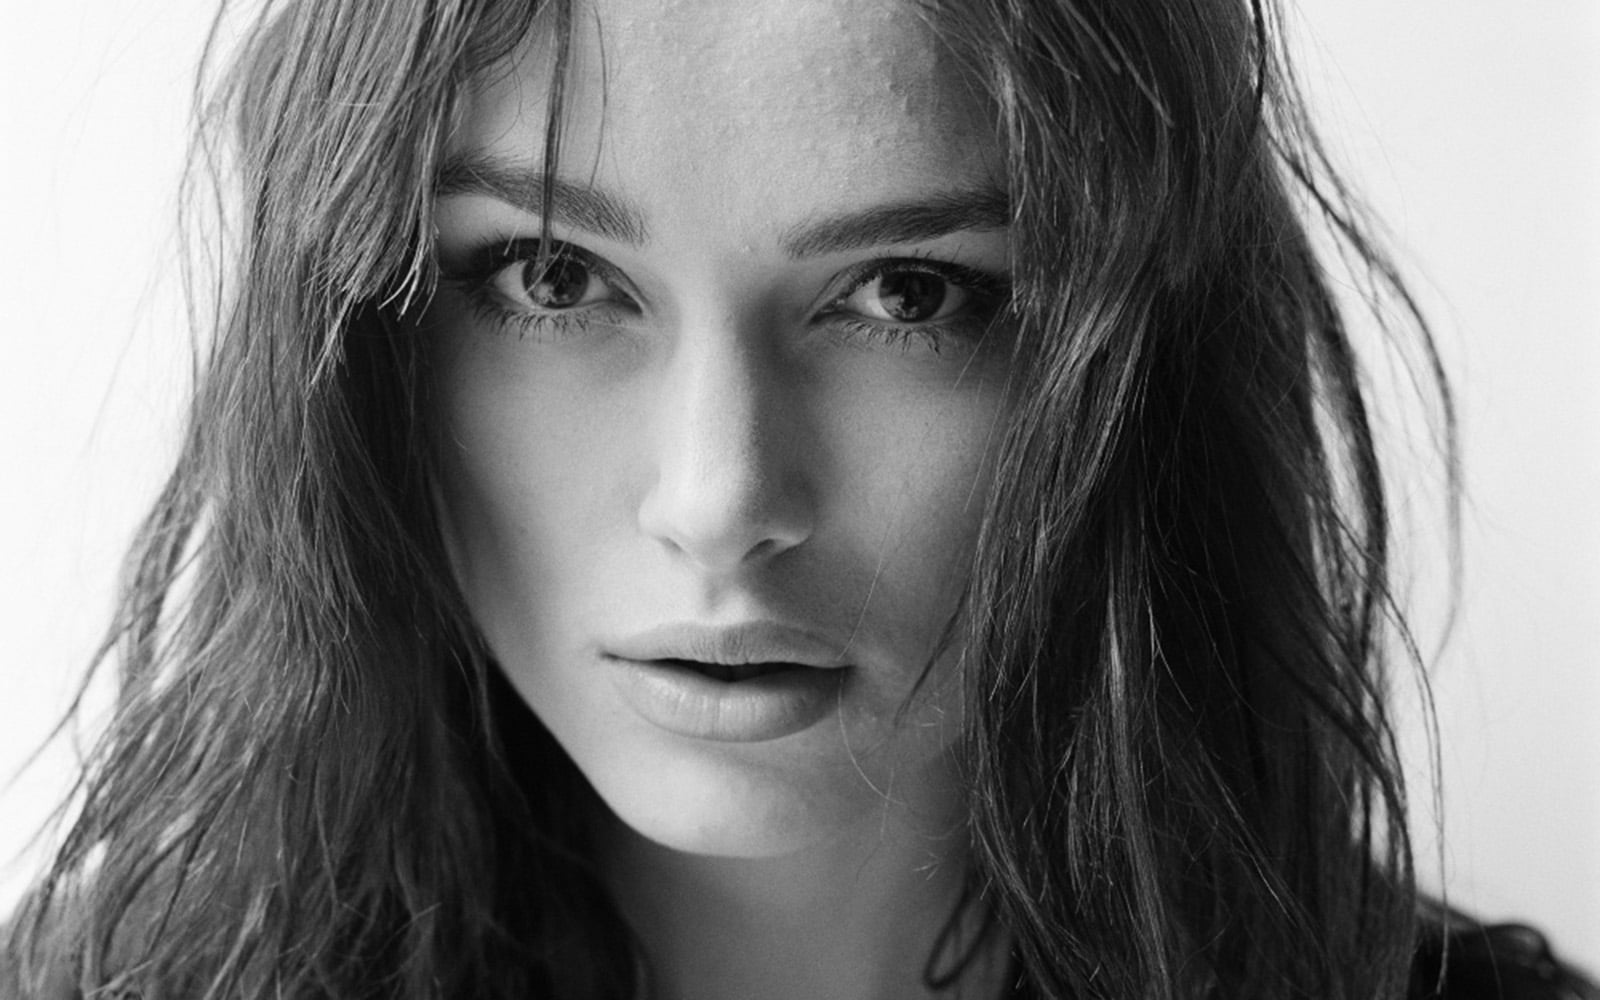 Car Games Wallpapers Hd 1080p 30 Keira Knightley Wallpapers Hd Download